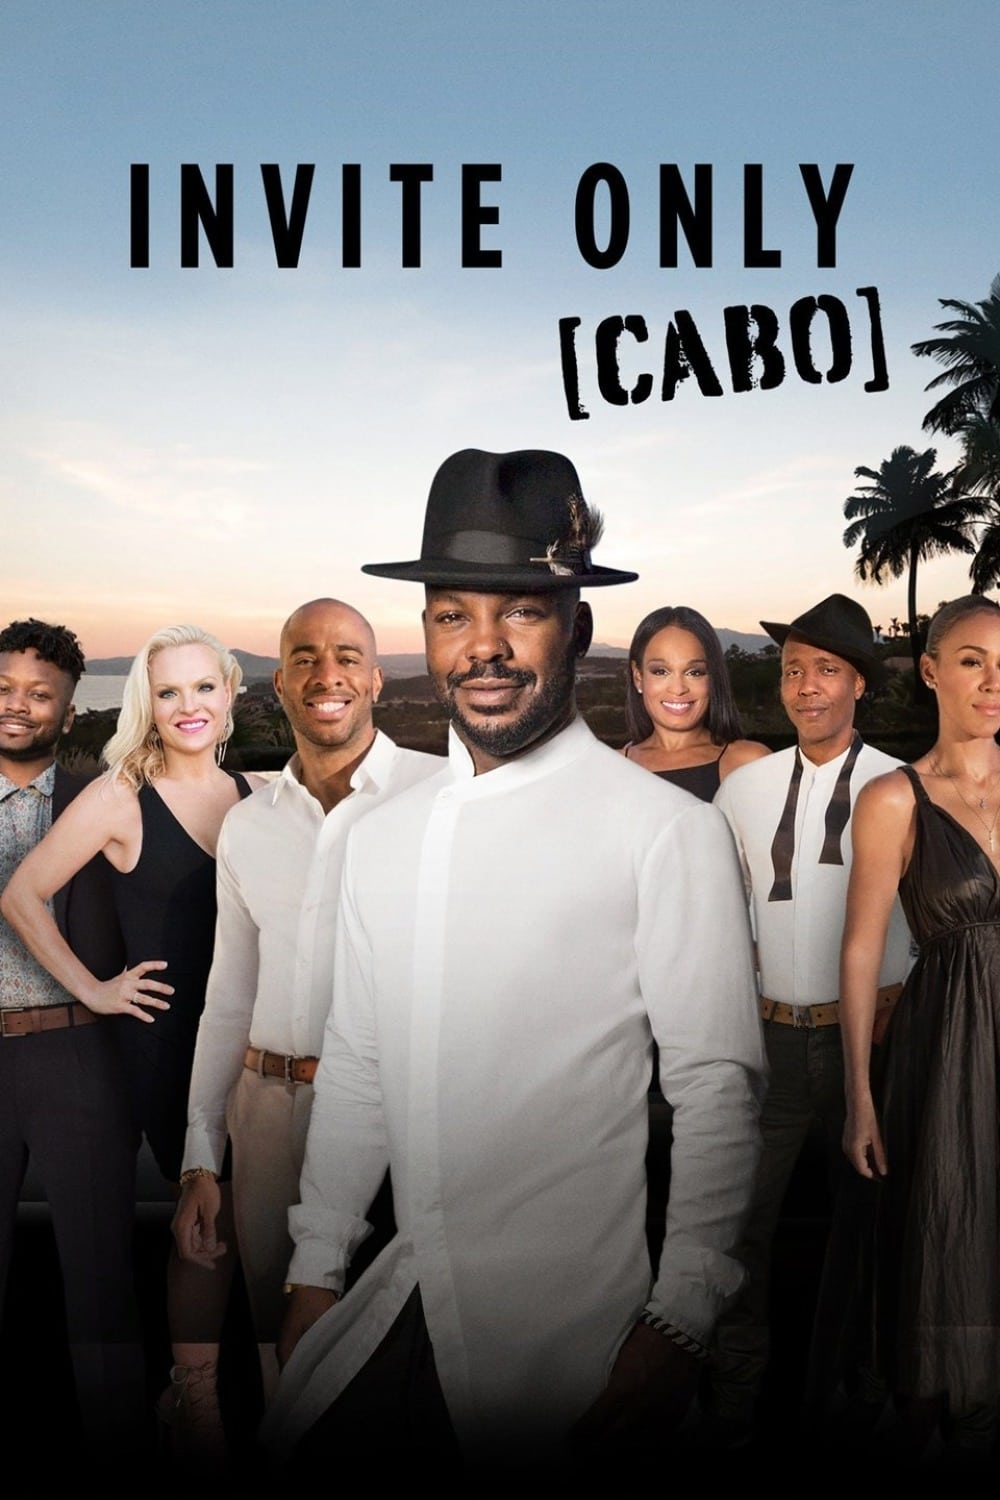 Invite Only Cabo (2017)